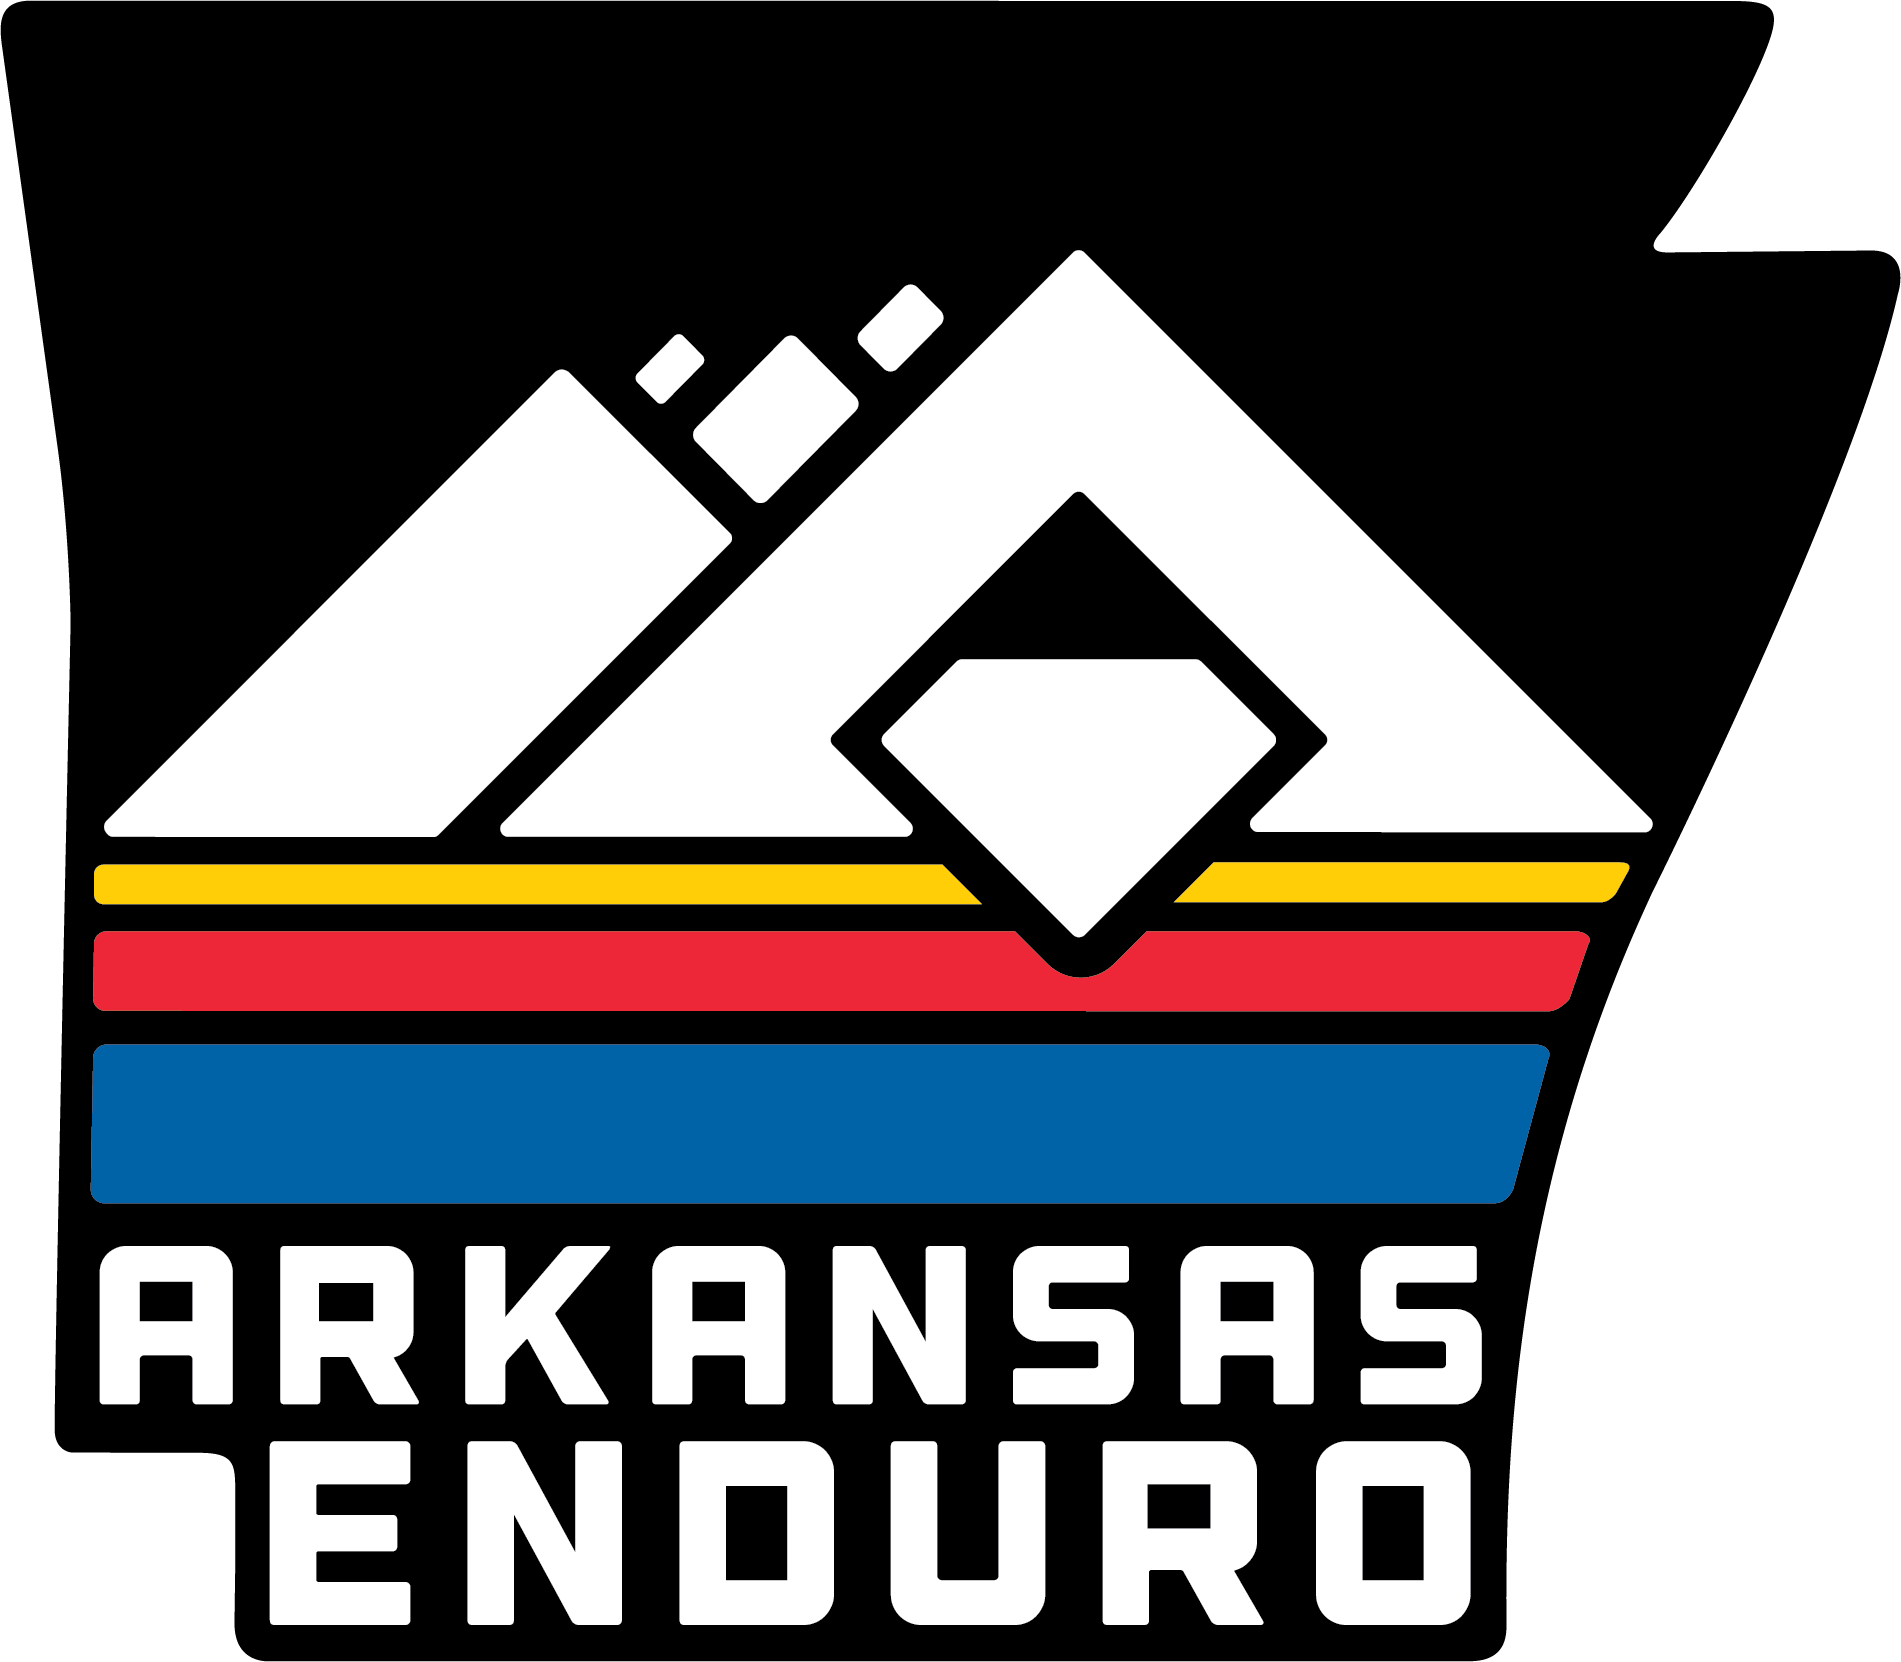 Arkansas Enduro